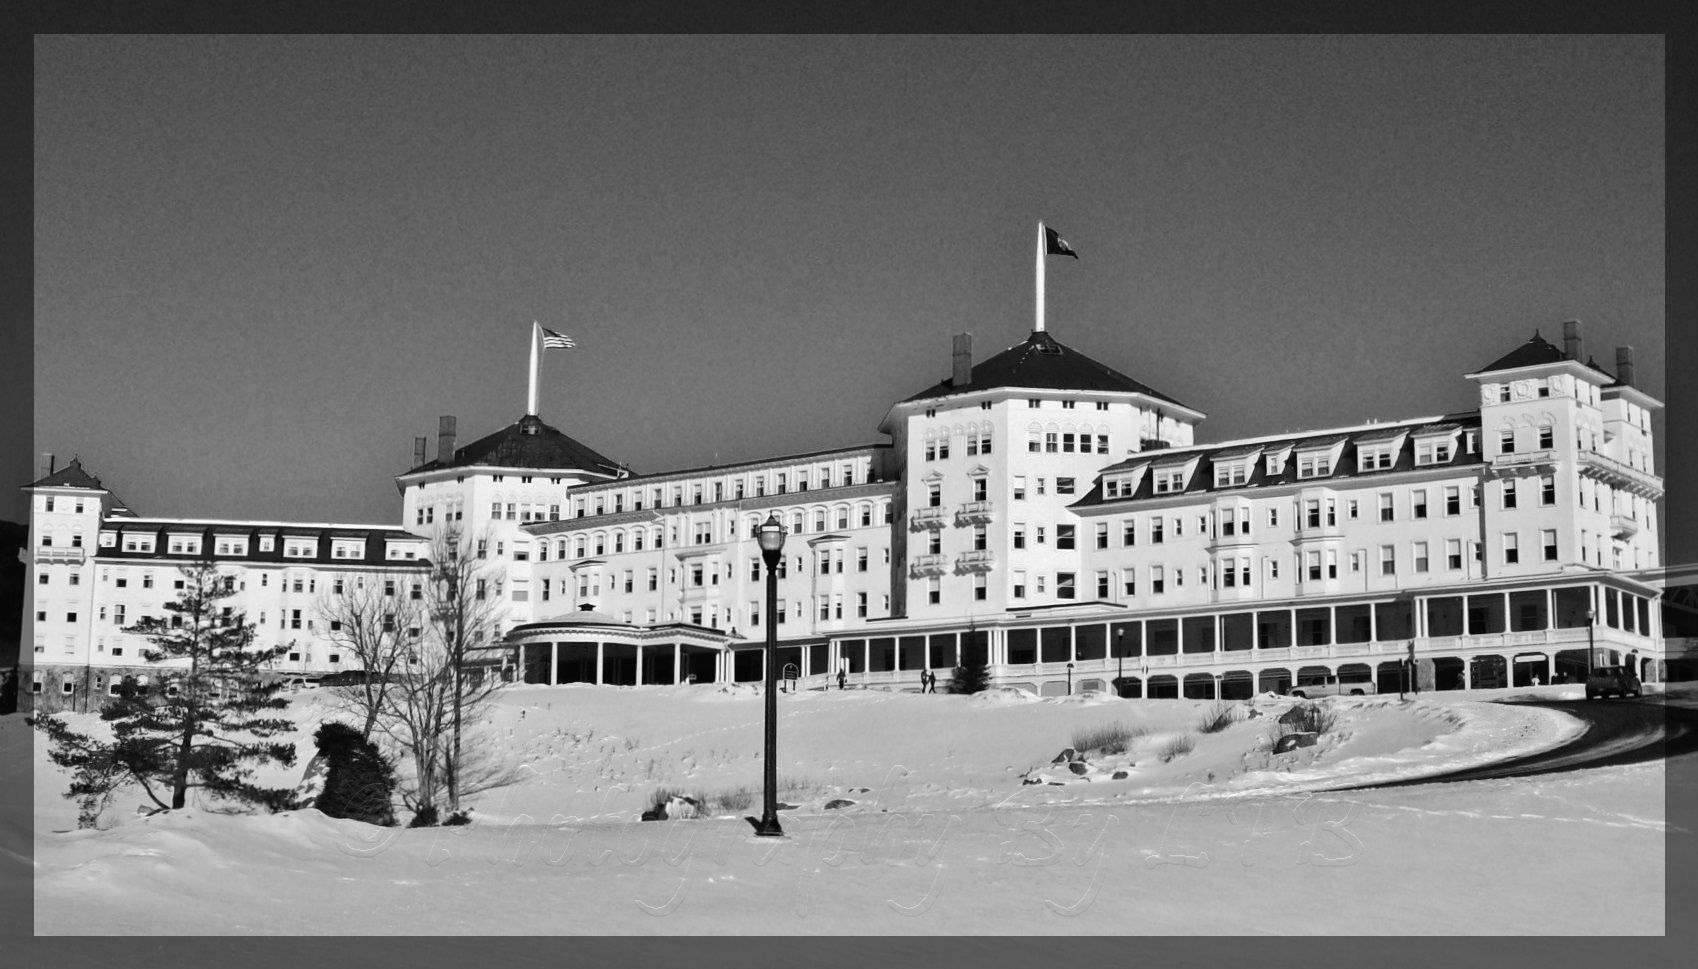 Mt Washington Resort Hotel In Bretton Woods